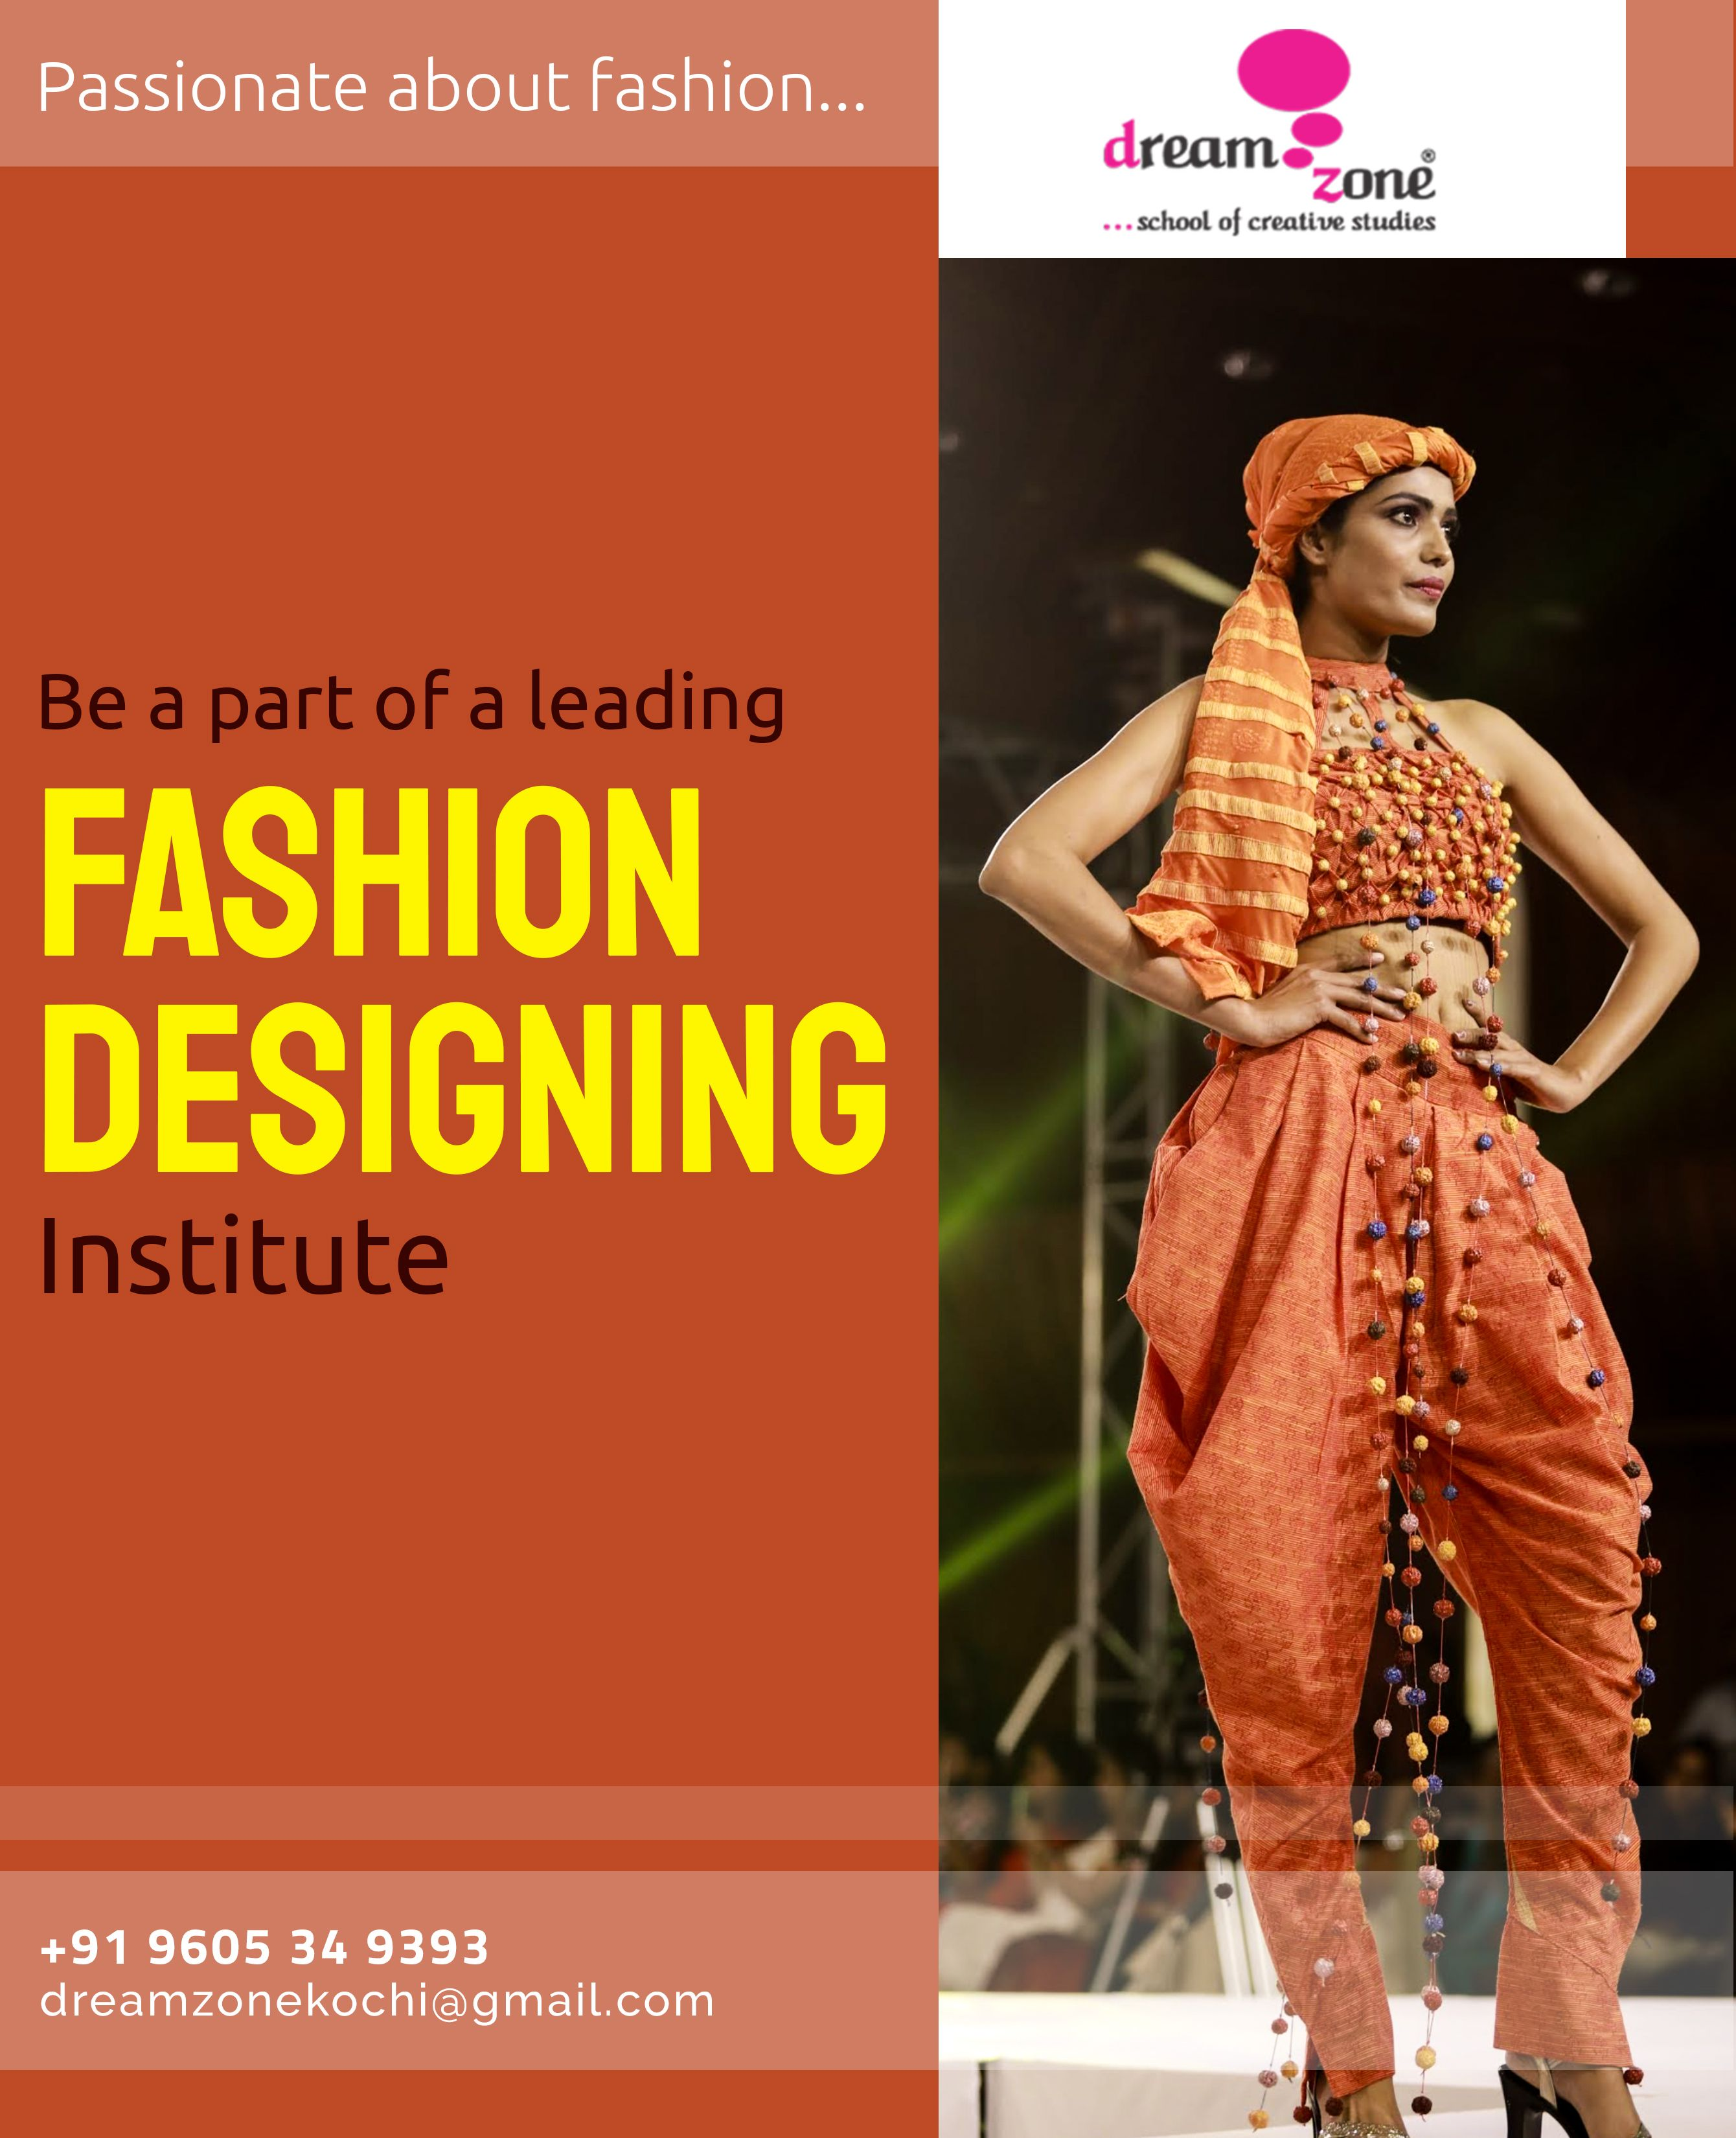 Dreamzone Offers Fashion Designing Course That Provides You With The Capabilities K Fashion Designing Course Graphic Design Course Fashion Designing Institute